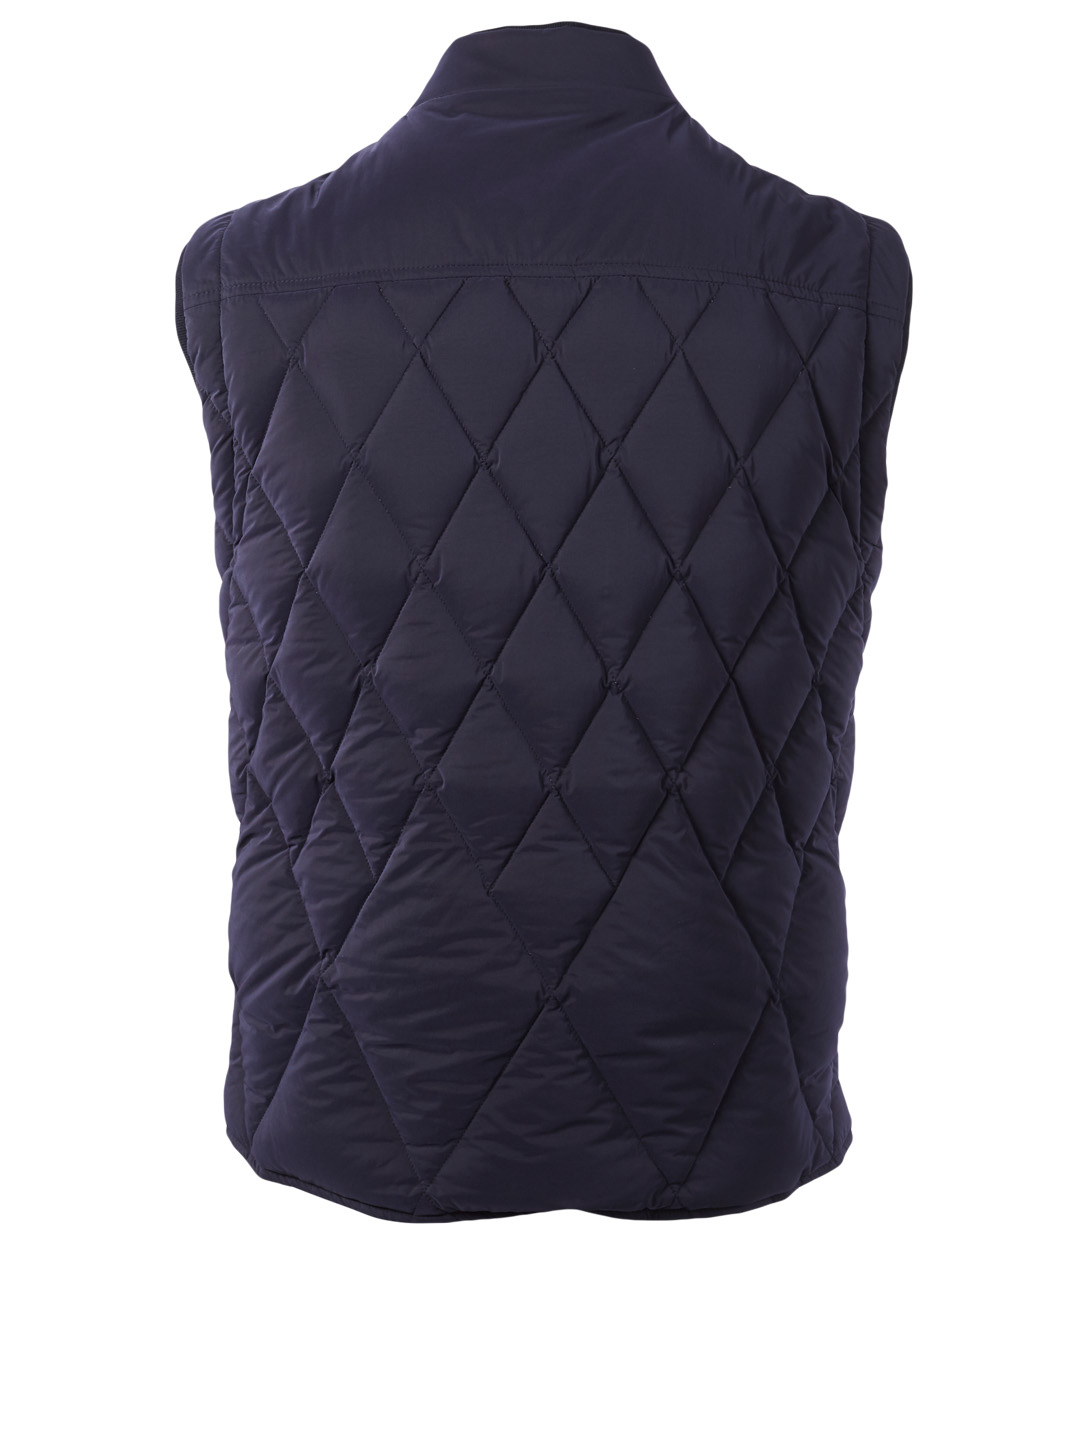 ZEGNA Quilted Microfibre Vest Men's Blue